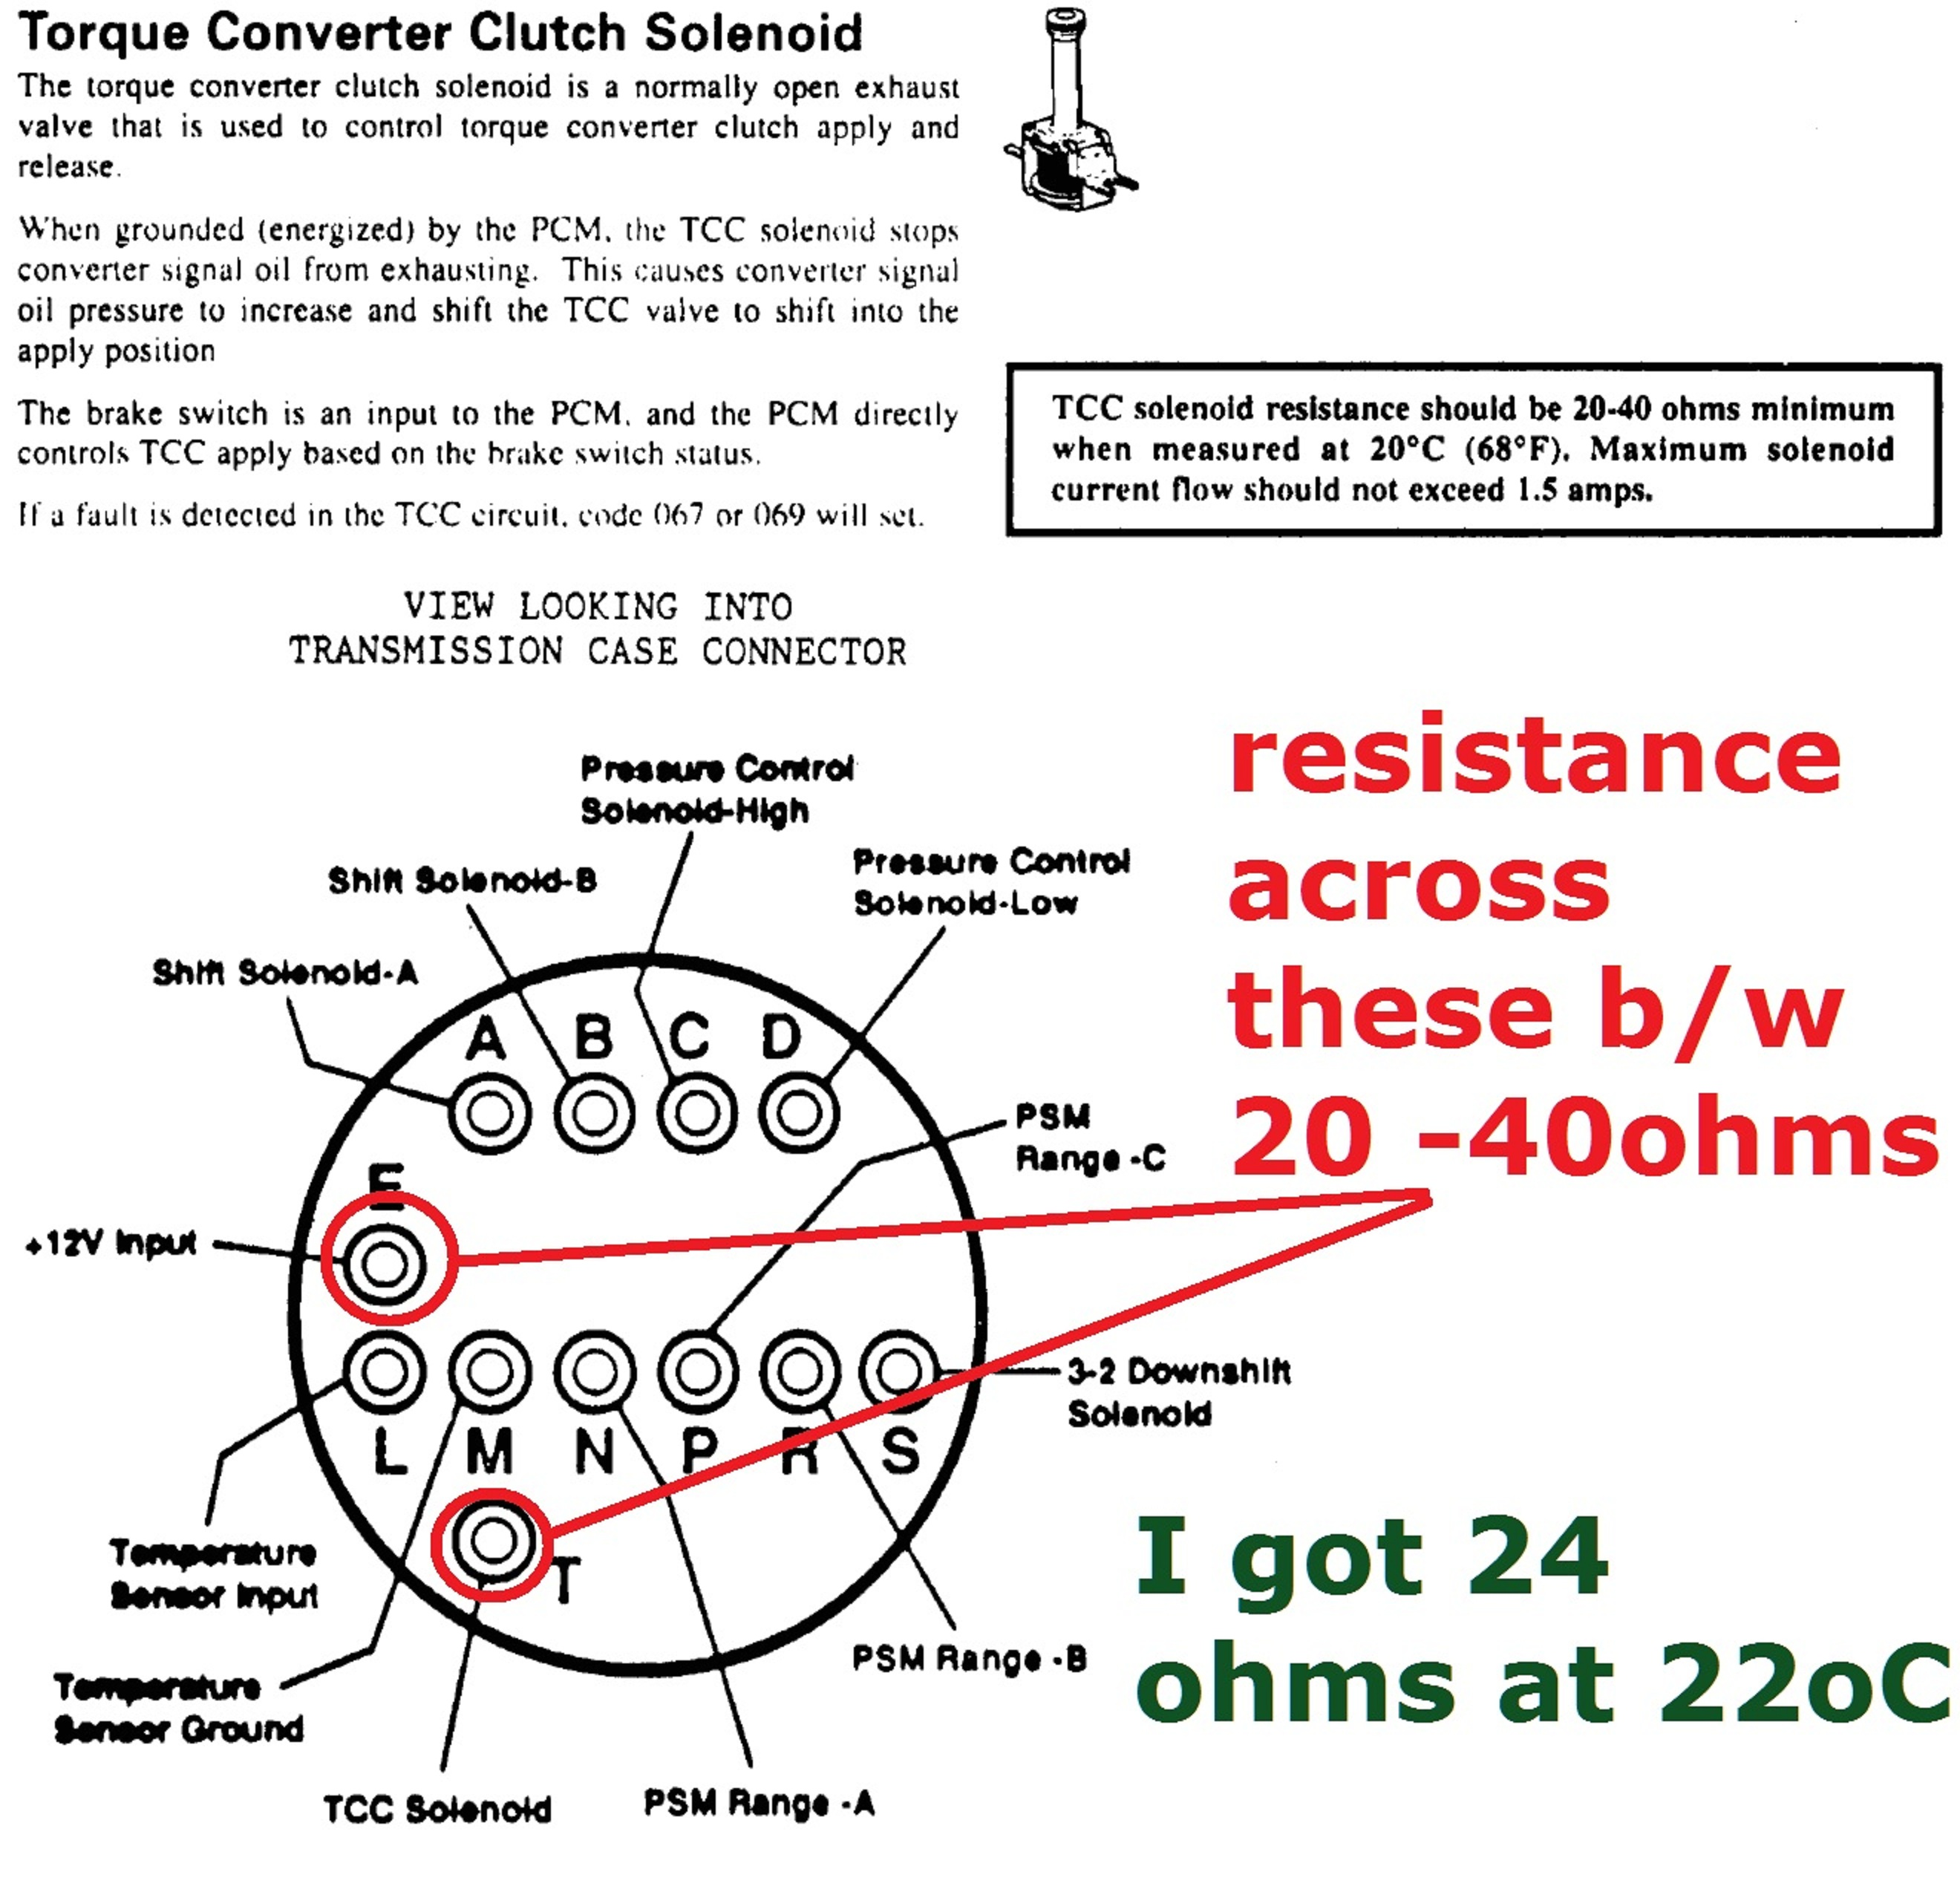 wiring diagram for a gm 4l60e transmission the wiring diagram gm 4160e wiring diagram gm wiring diagrams for car or truck wiring